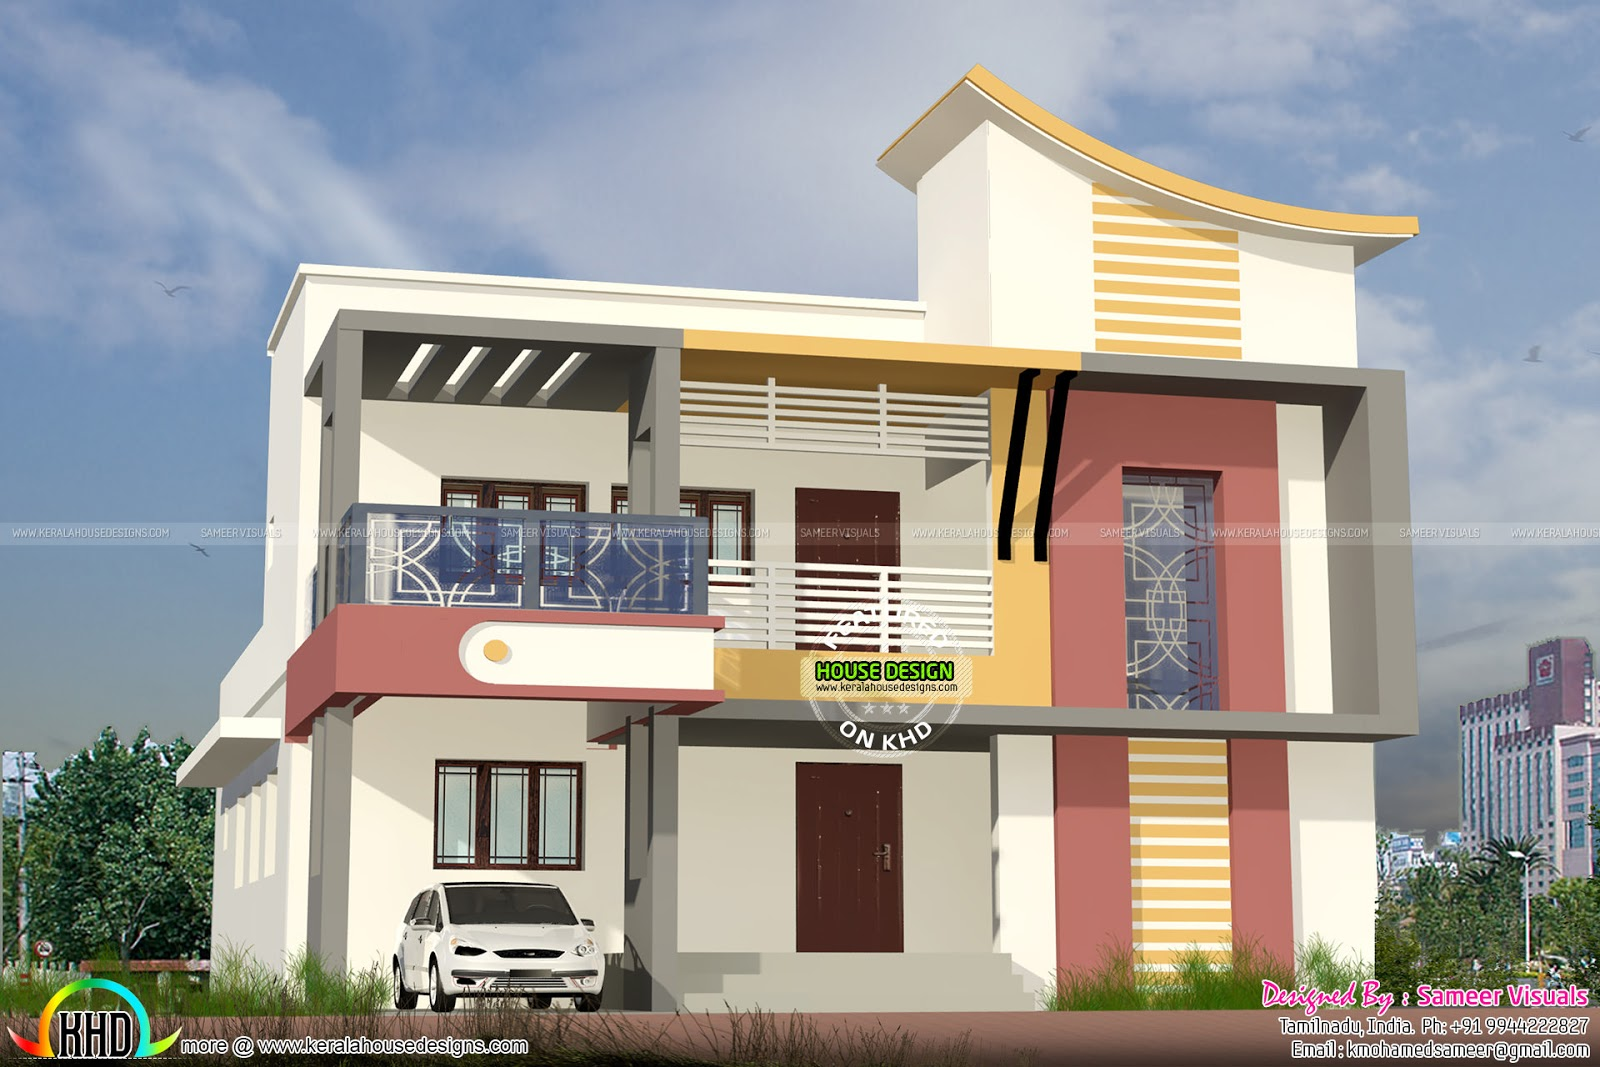 Model house plan in tamilnadu joy studio design gallery for Tamilnadu home design photos